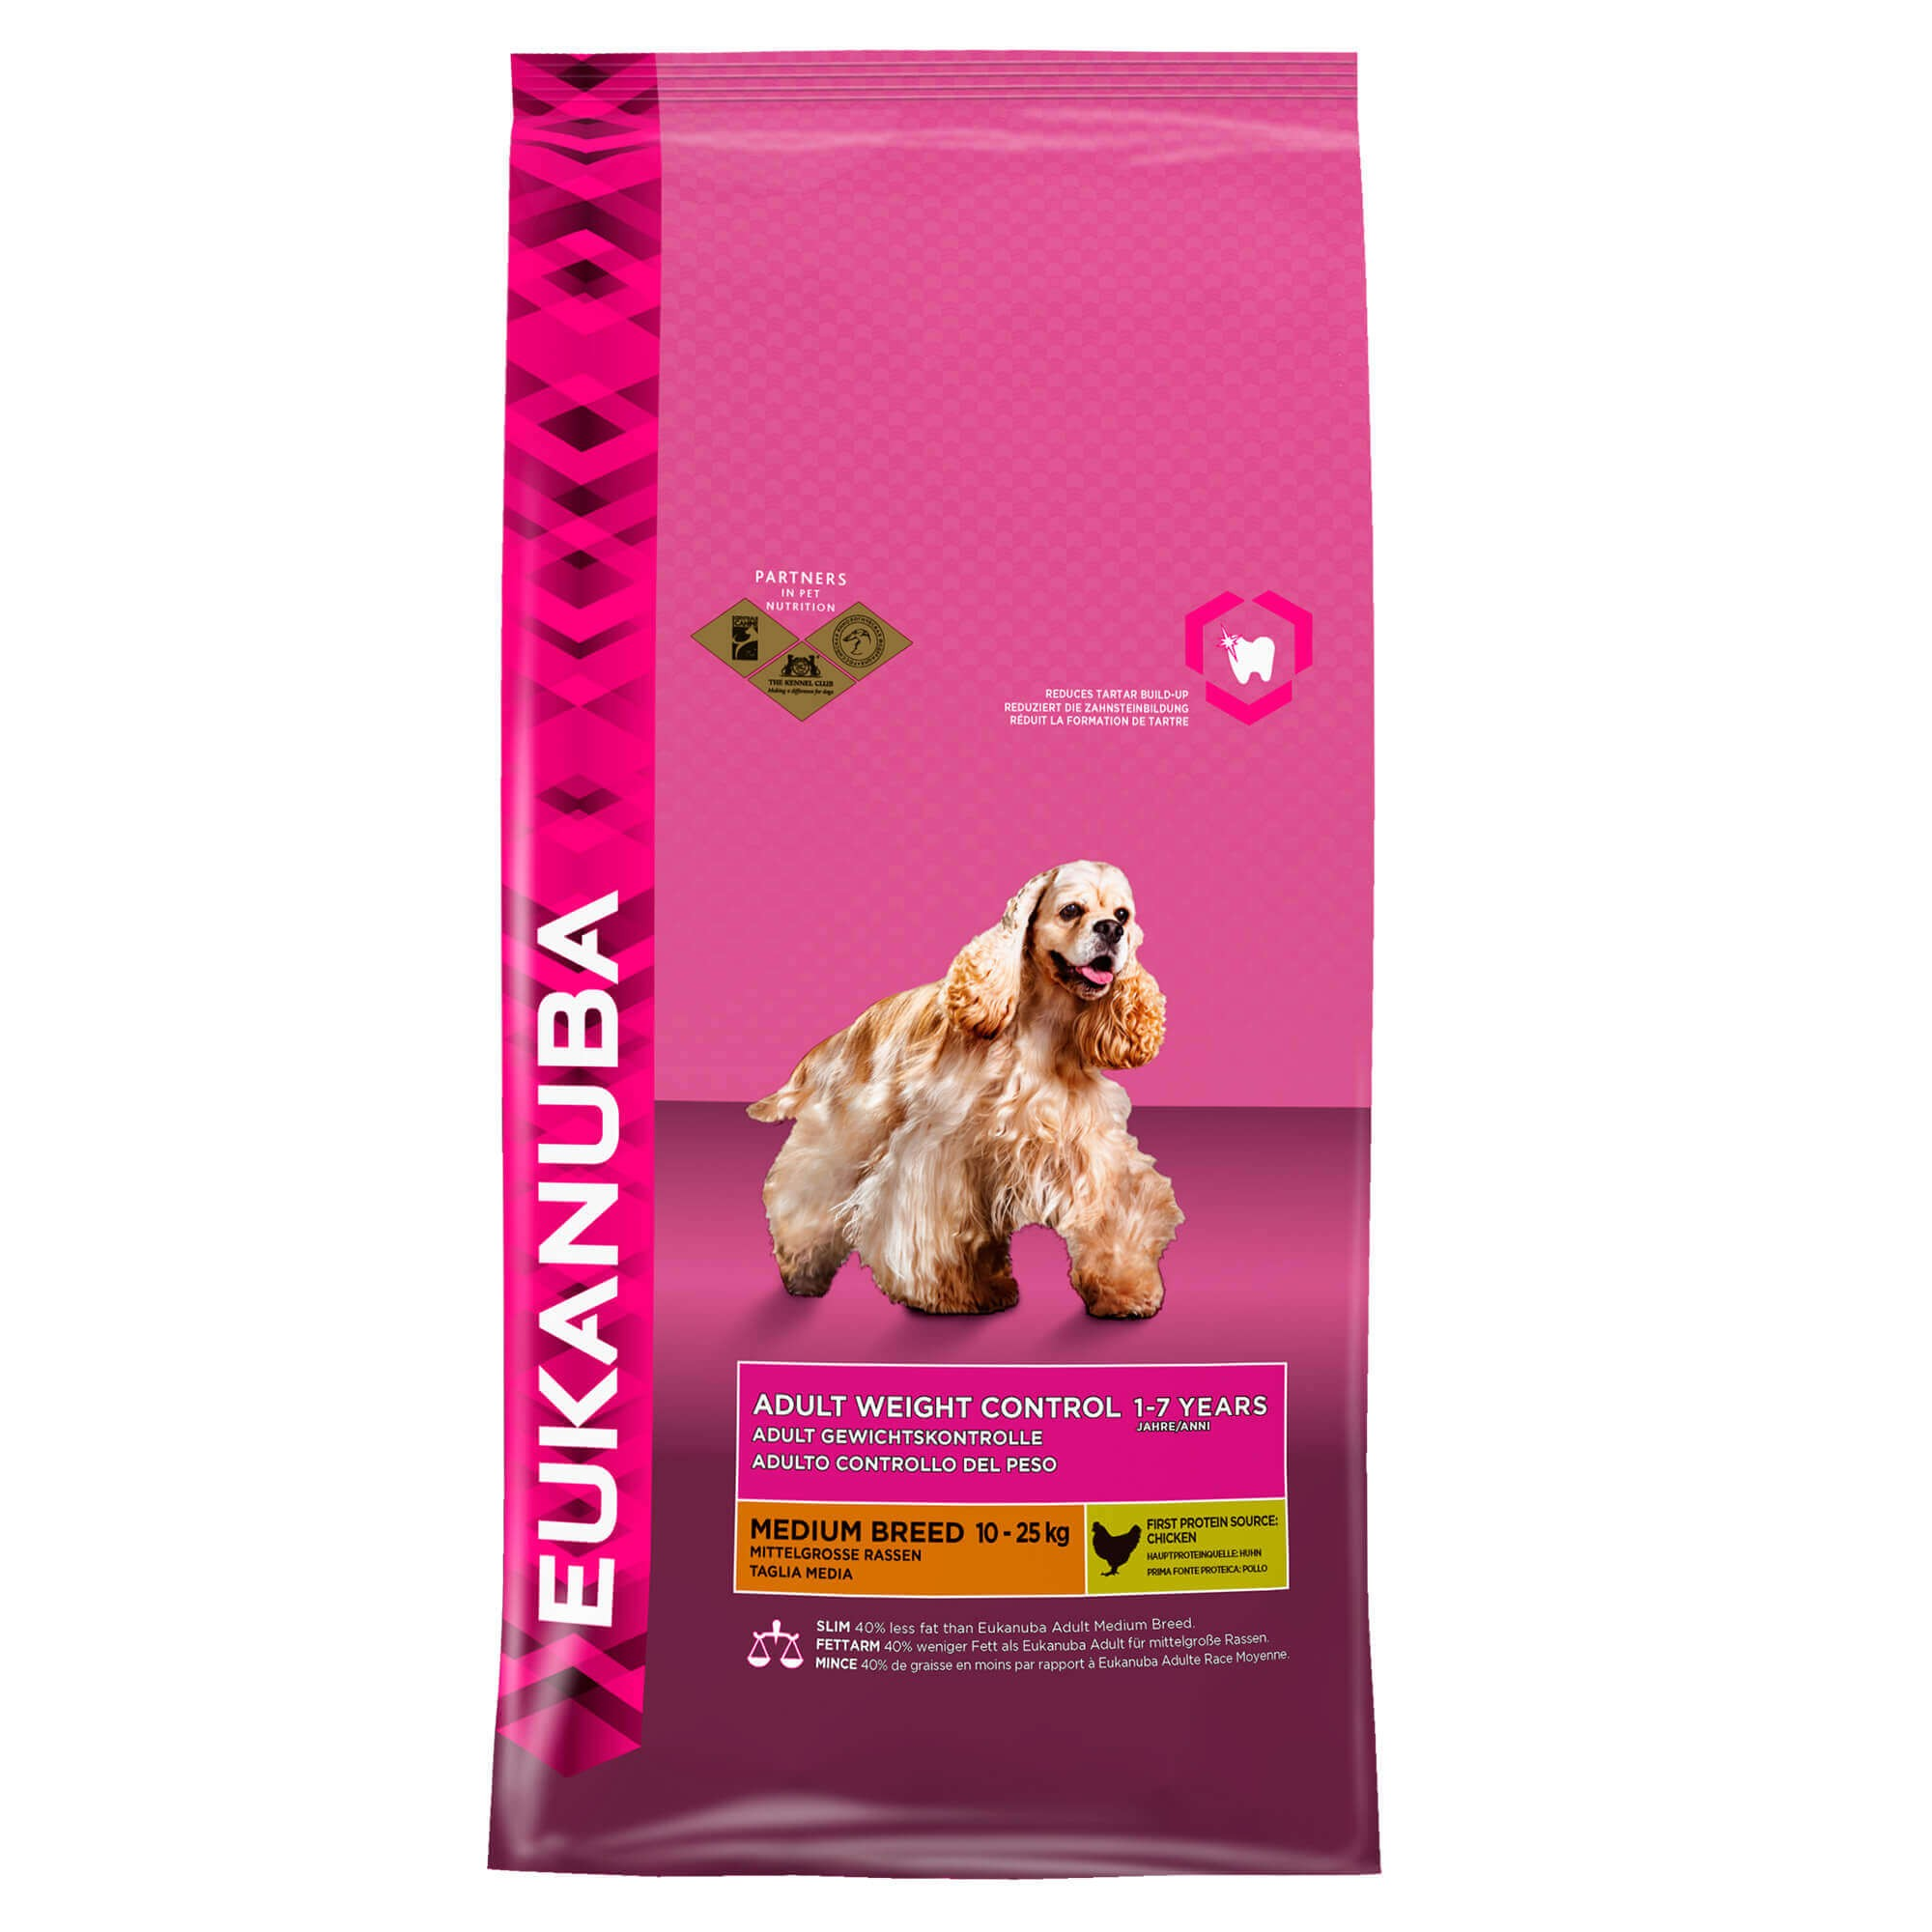 Eukanuba Adult Weight Control Medium Breed pour chien